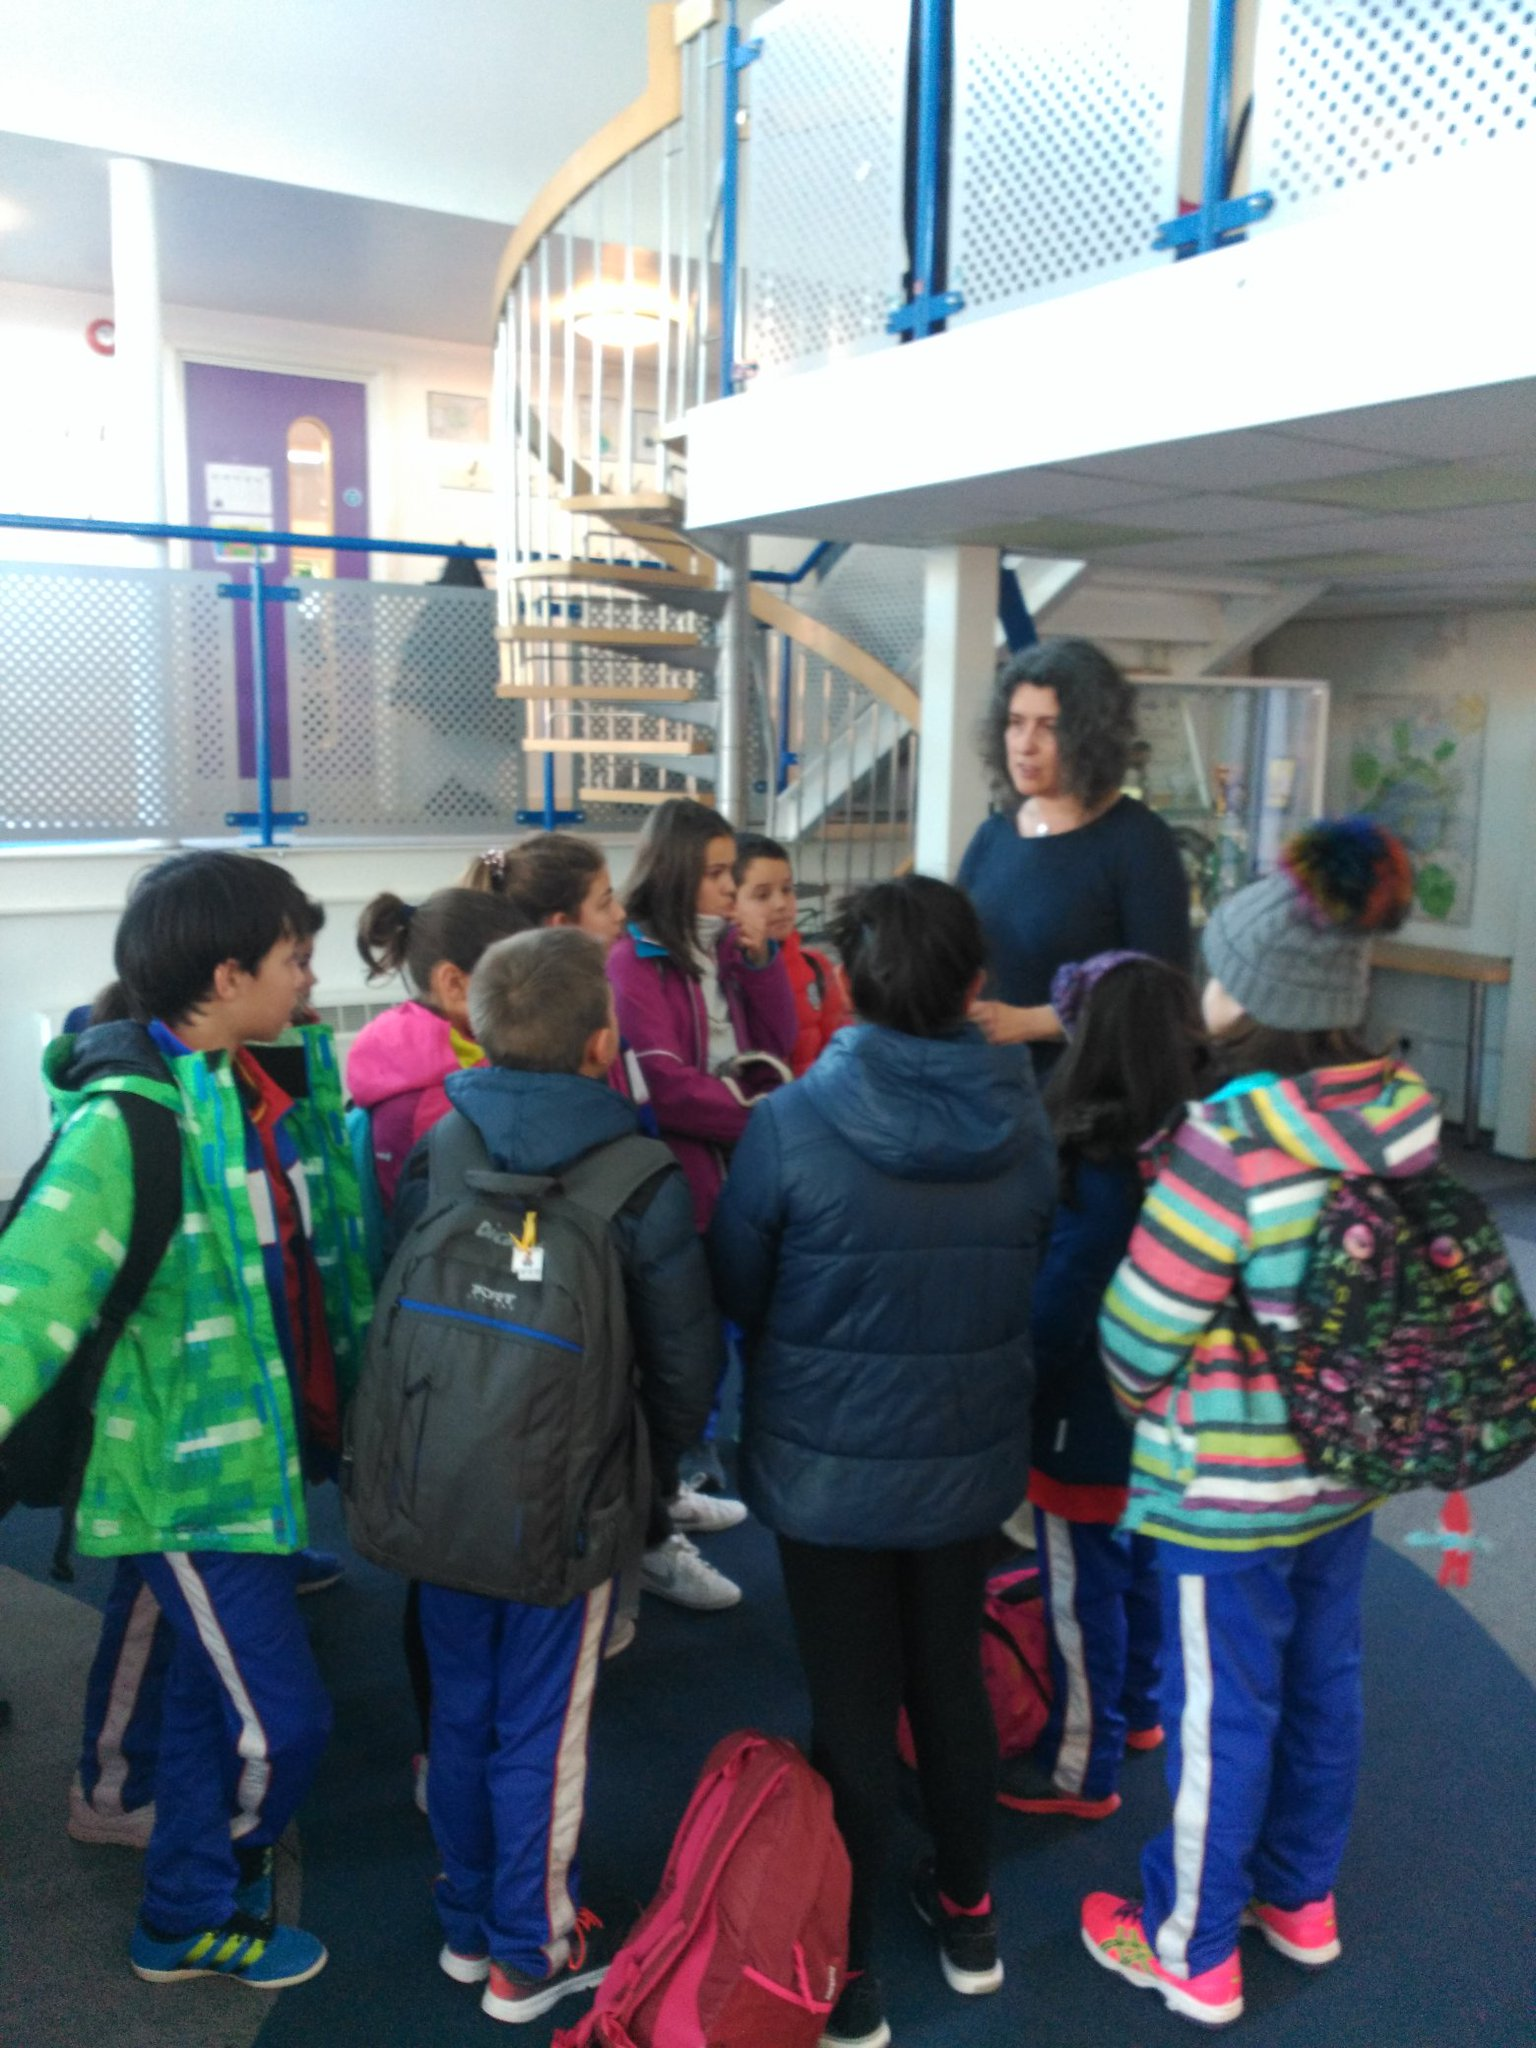 The headteacher from @HTPDSchool  said to the @colsangregorio. We are so proud of you, you are great ambassor of your school & your country https://t.co/p3lL1ftiJ5